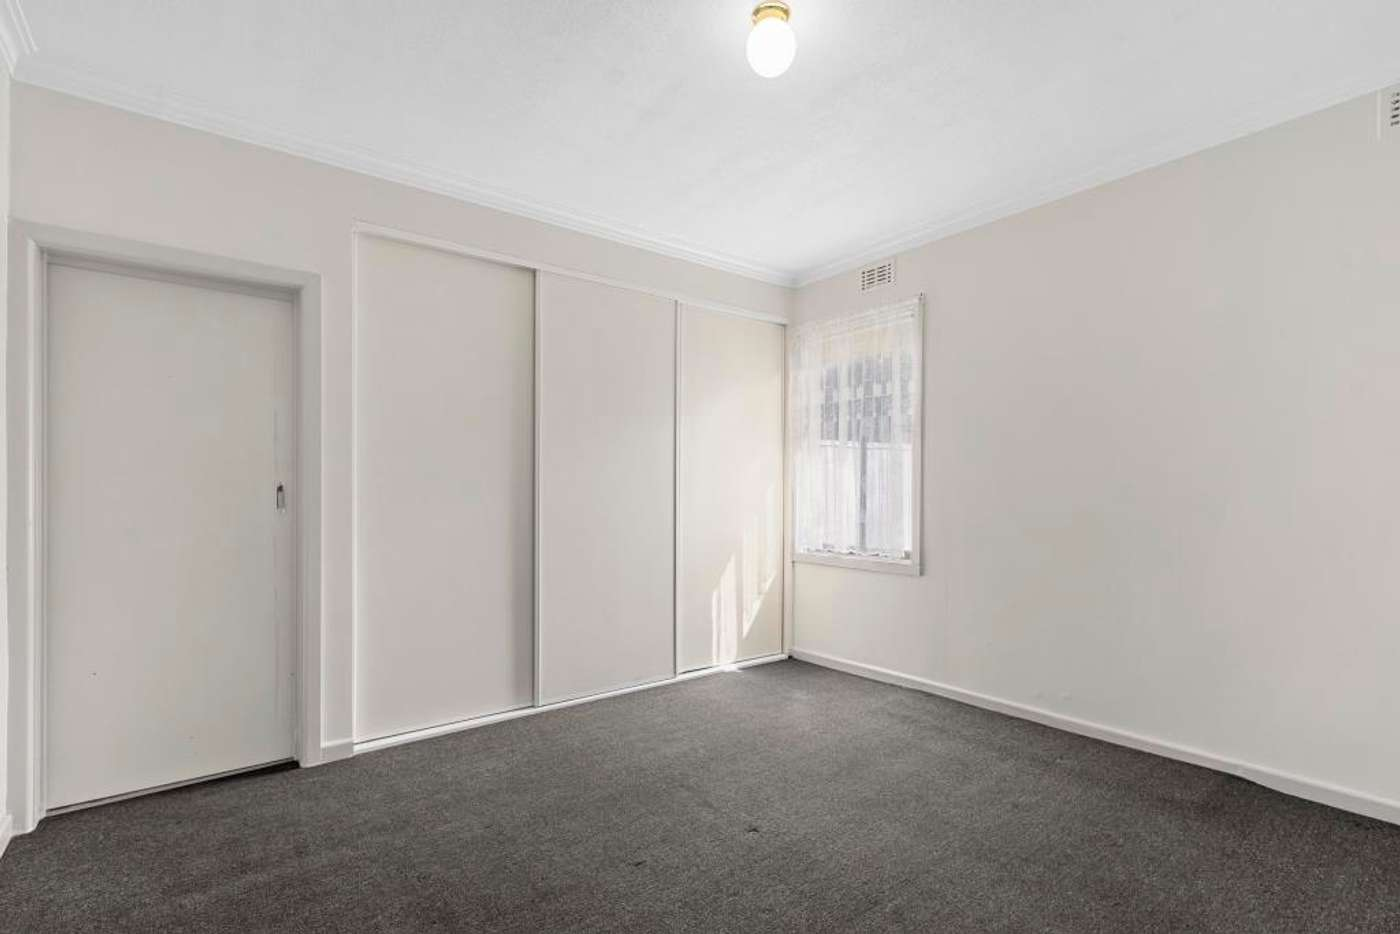 Sixth view of Homely house listing, 373 Princes Drive, Morwell VIC 3840